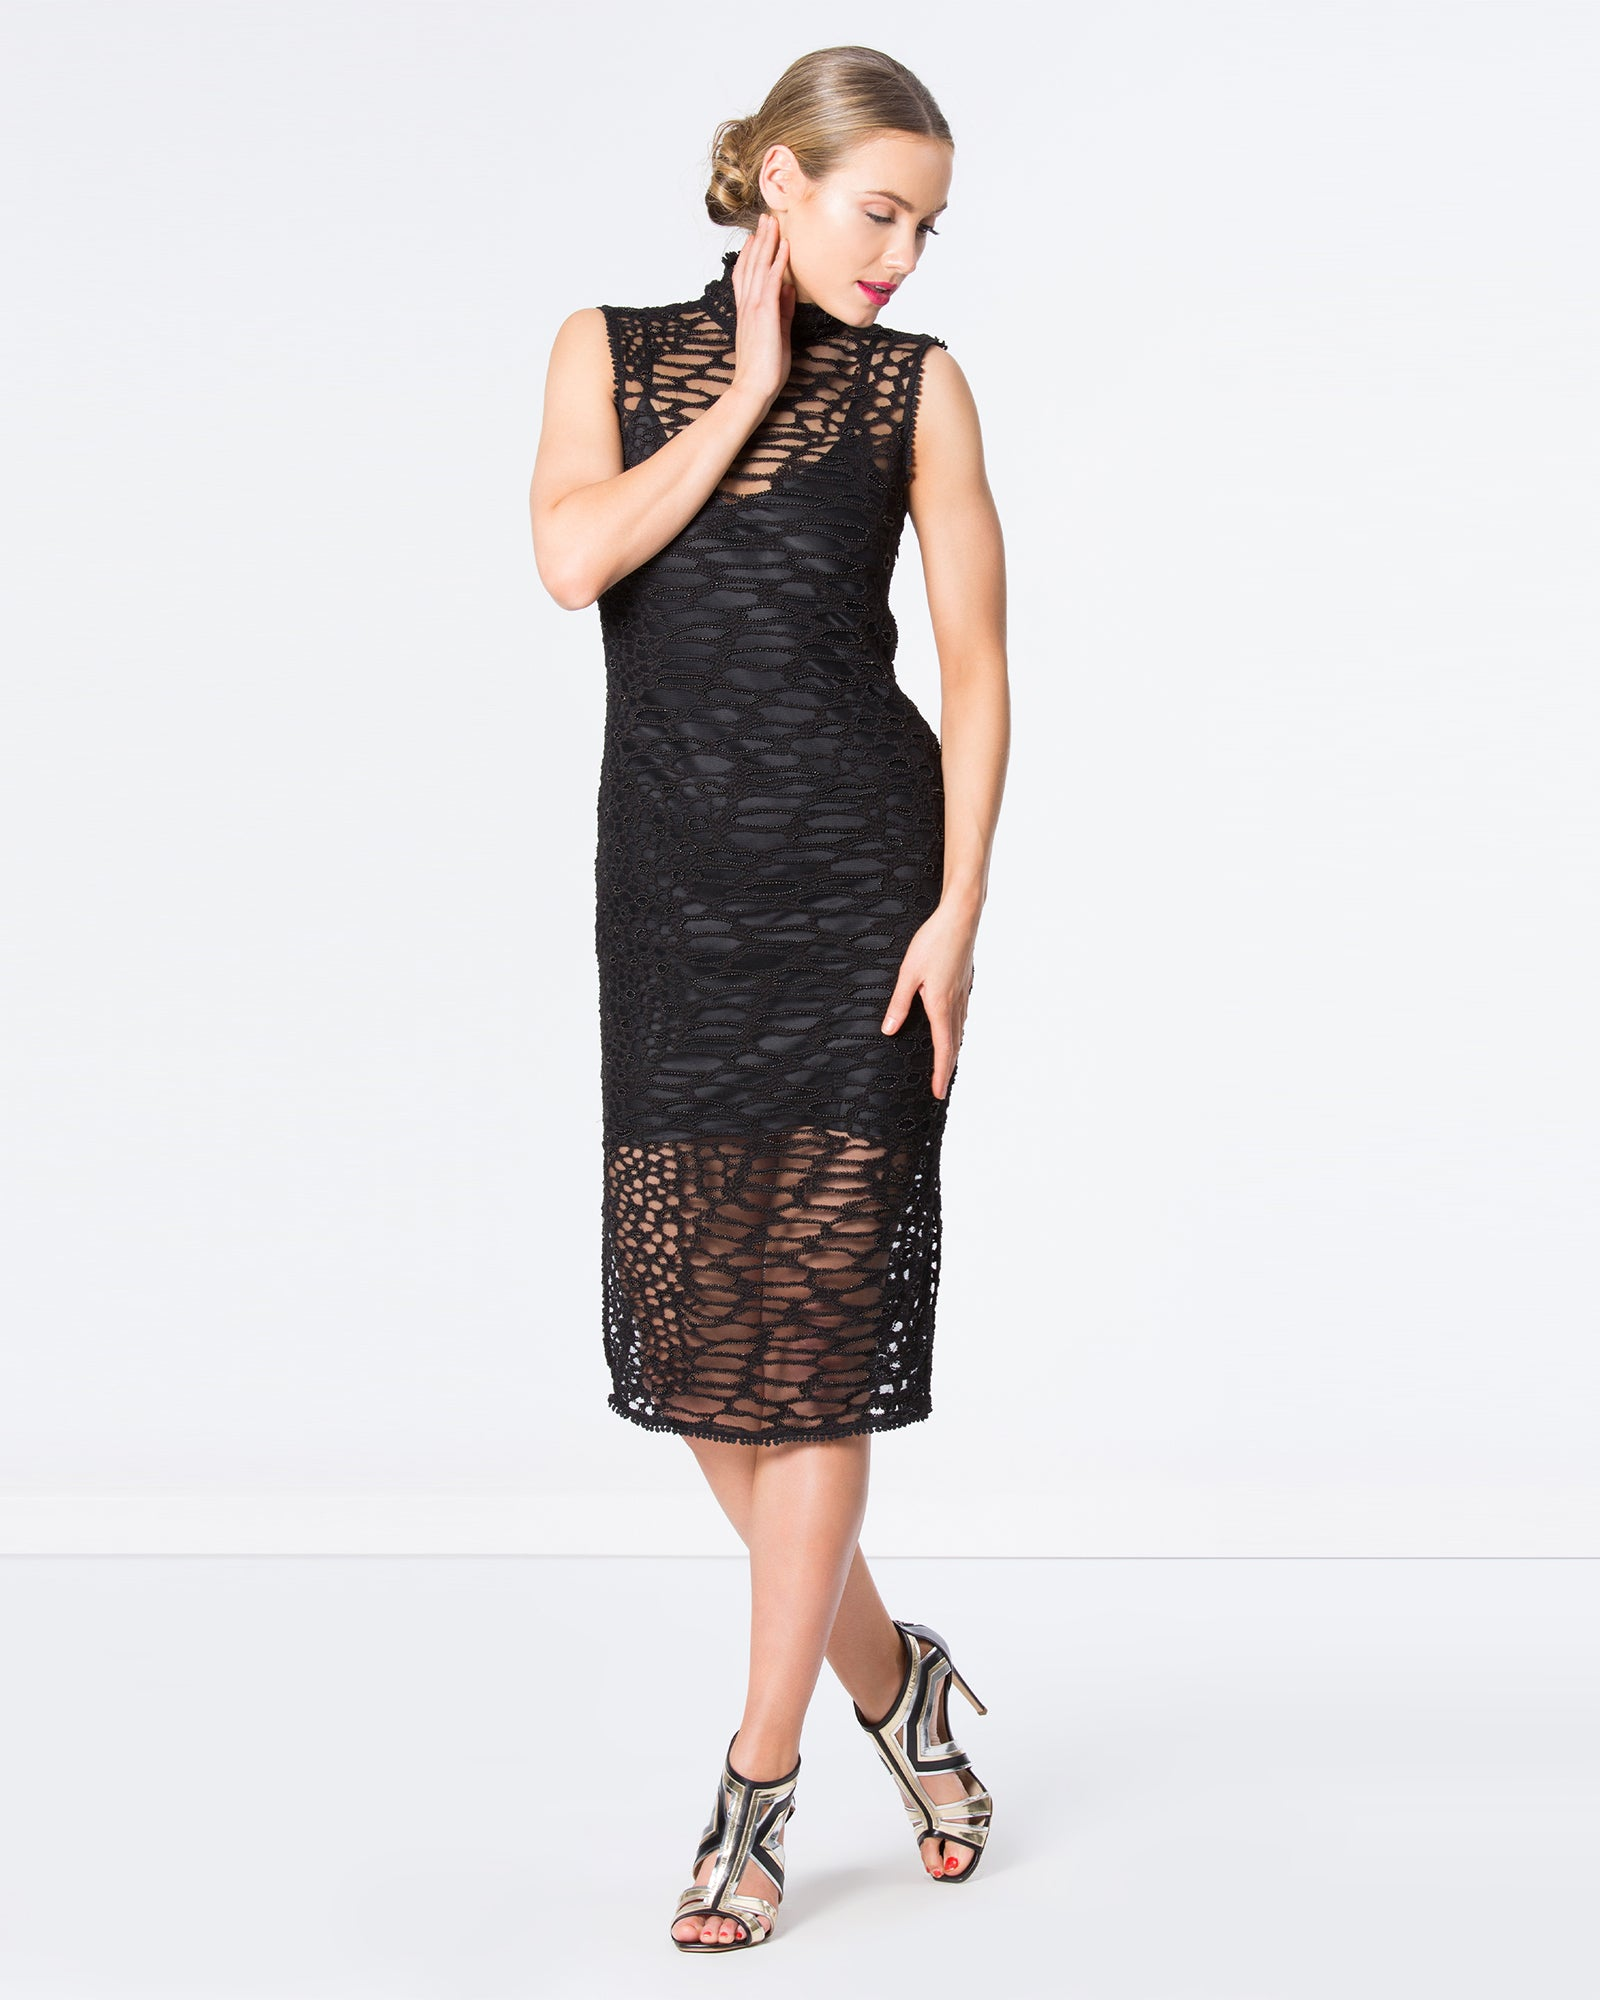 EMBROIDERED BEADED LEOPARD LACE DRESS